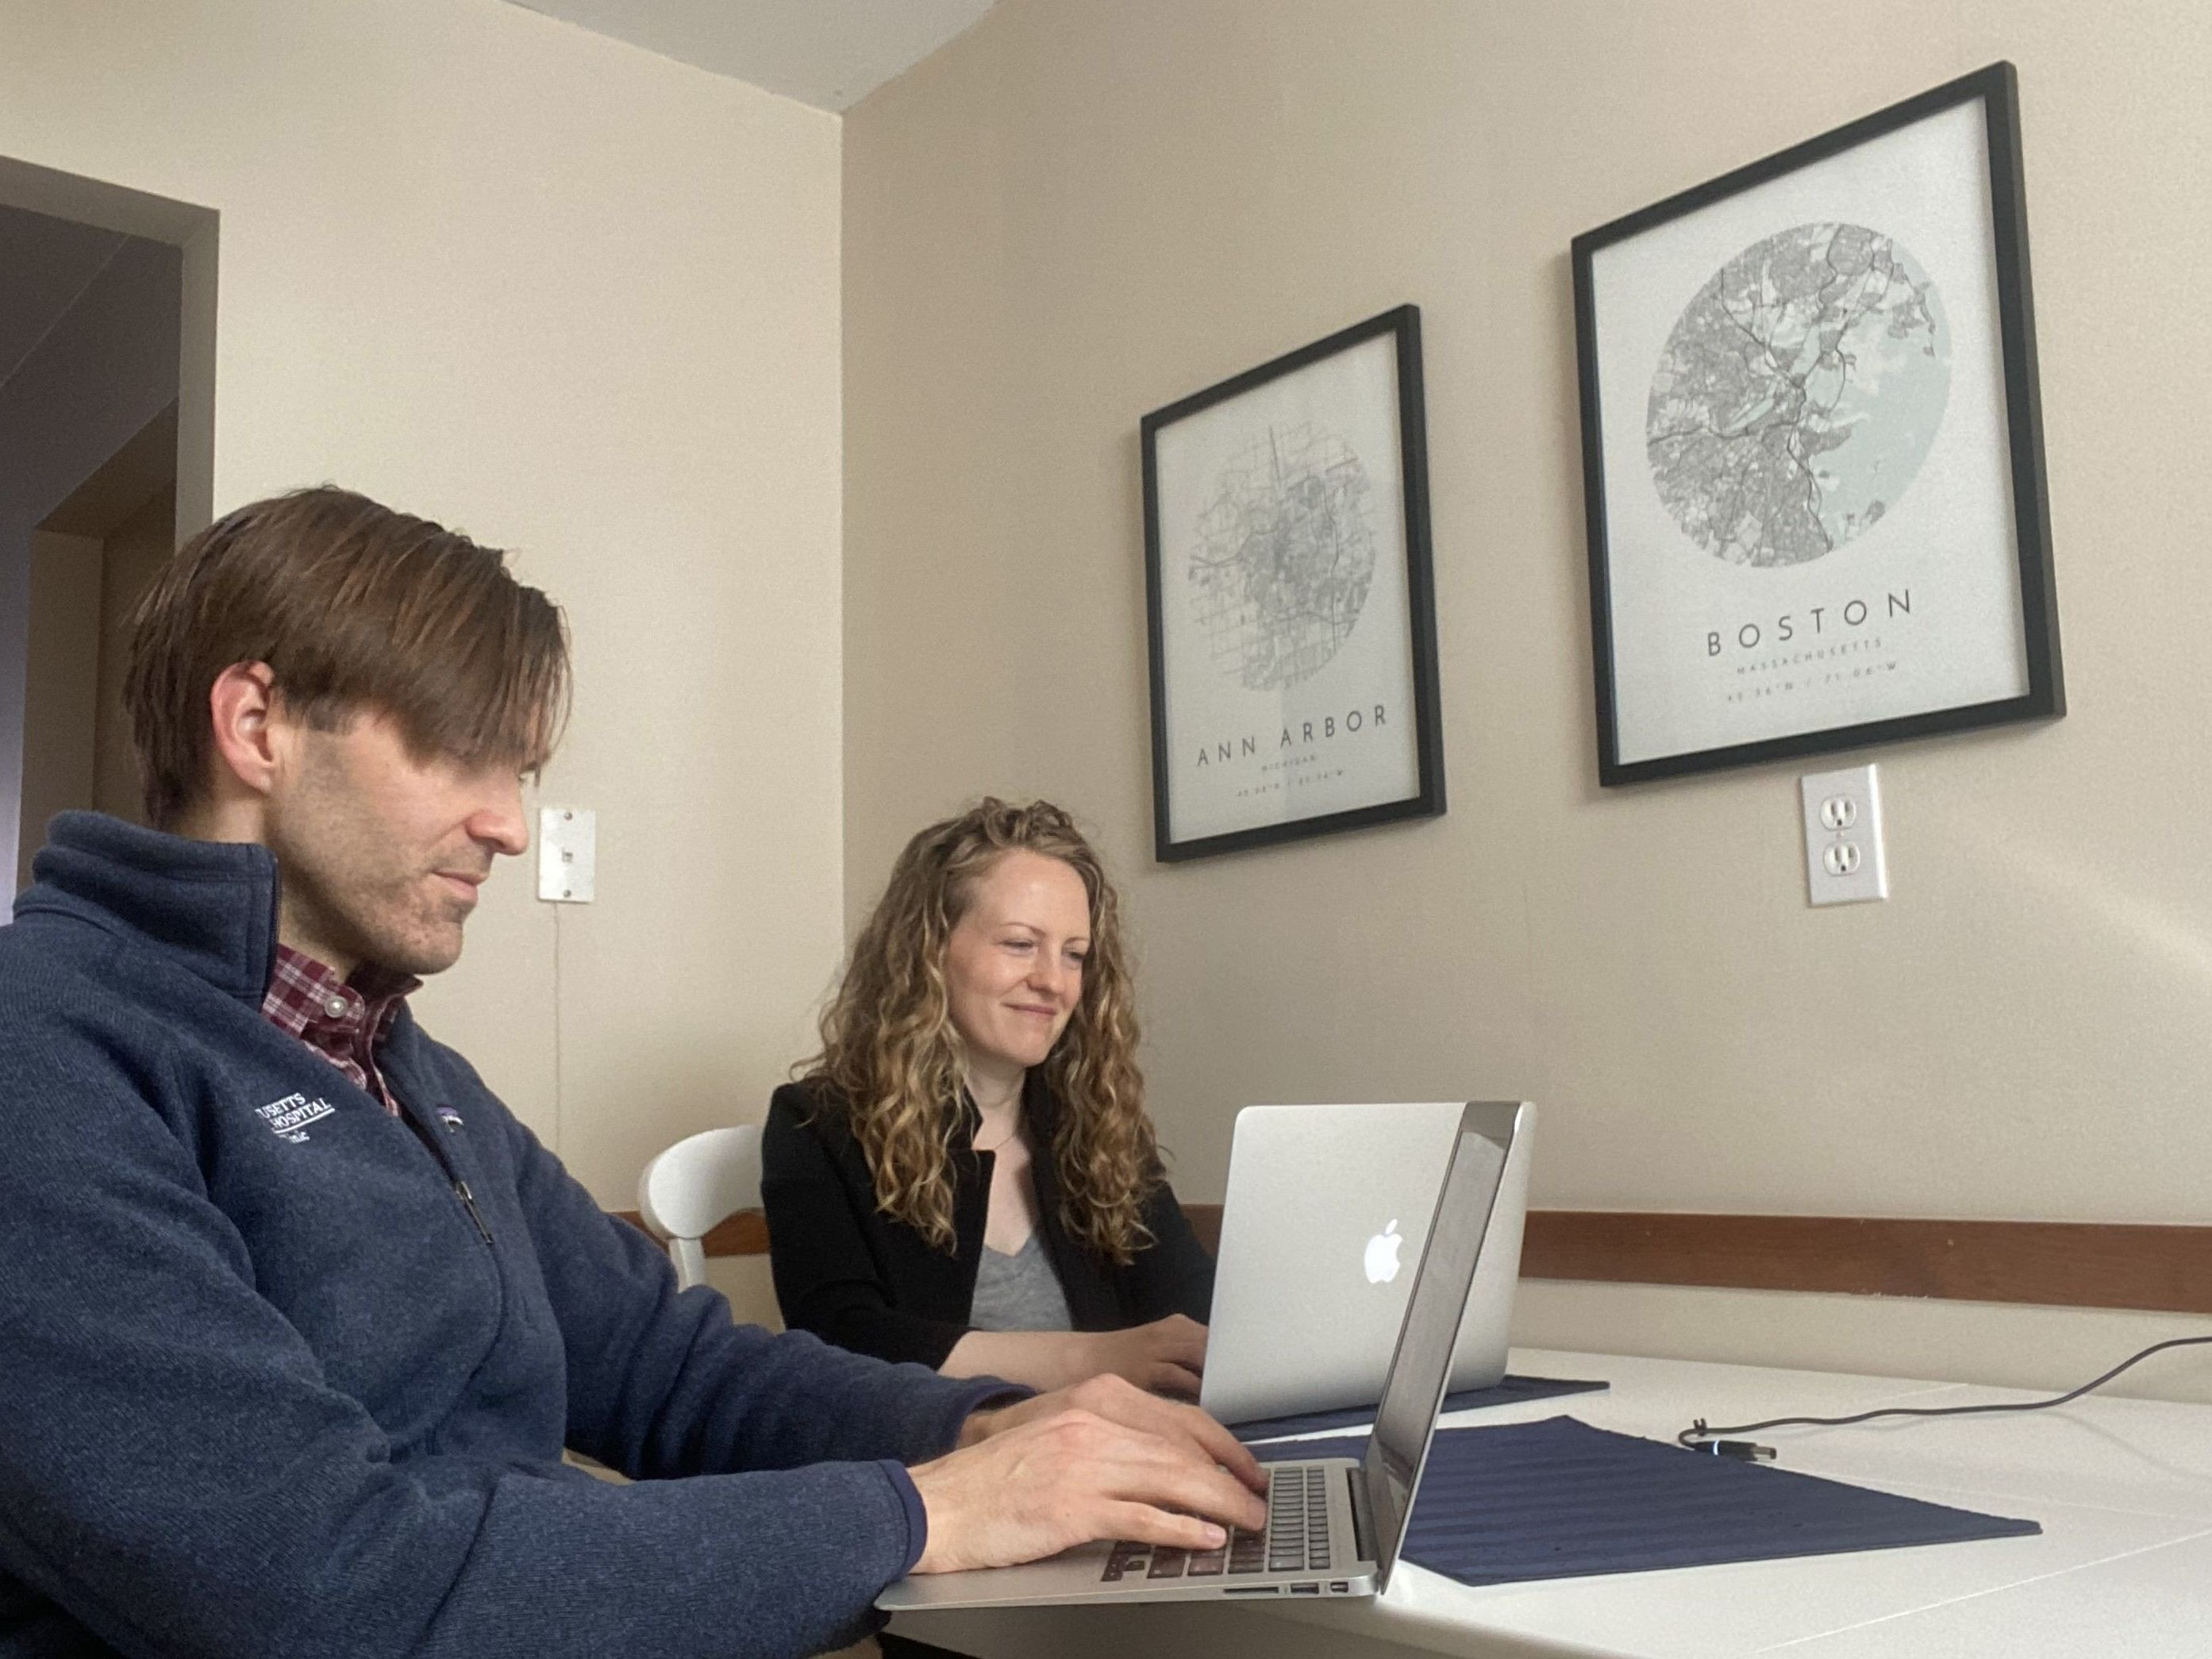 """Dan Johnson and Rebecca Ametrano have searched real estate listings since January. """"We've learned if you wait till the open house, probably it's going to be sold before the open house,"""" Johnson says. """"So then we're scrambling to figure out which one of us can take time off of work to go see it during a workday."""" Even so, he says they were too late as homes sold in less than two days. (Courtesy of Rebecca Ametrano and Dan Johnson)"""